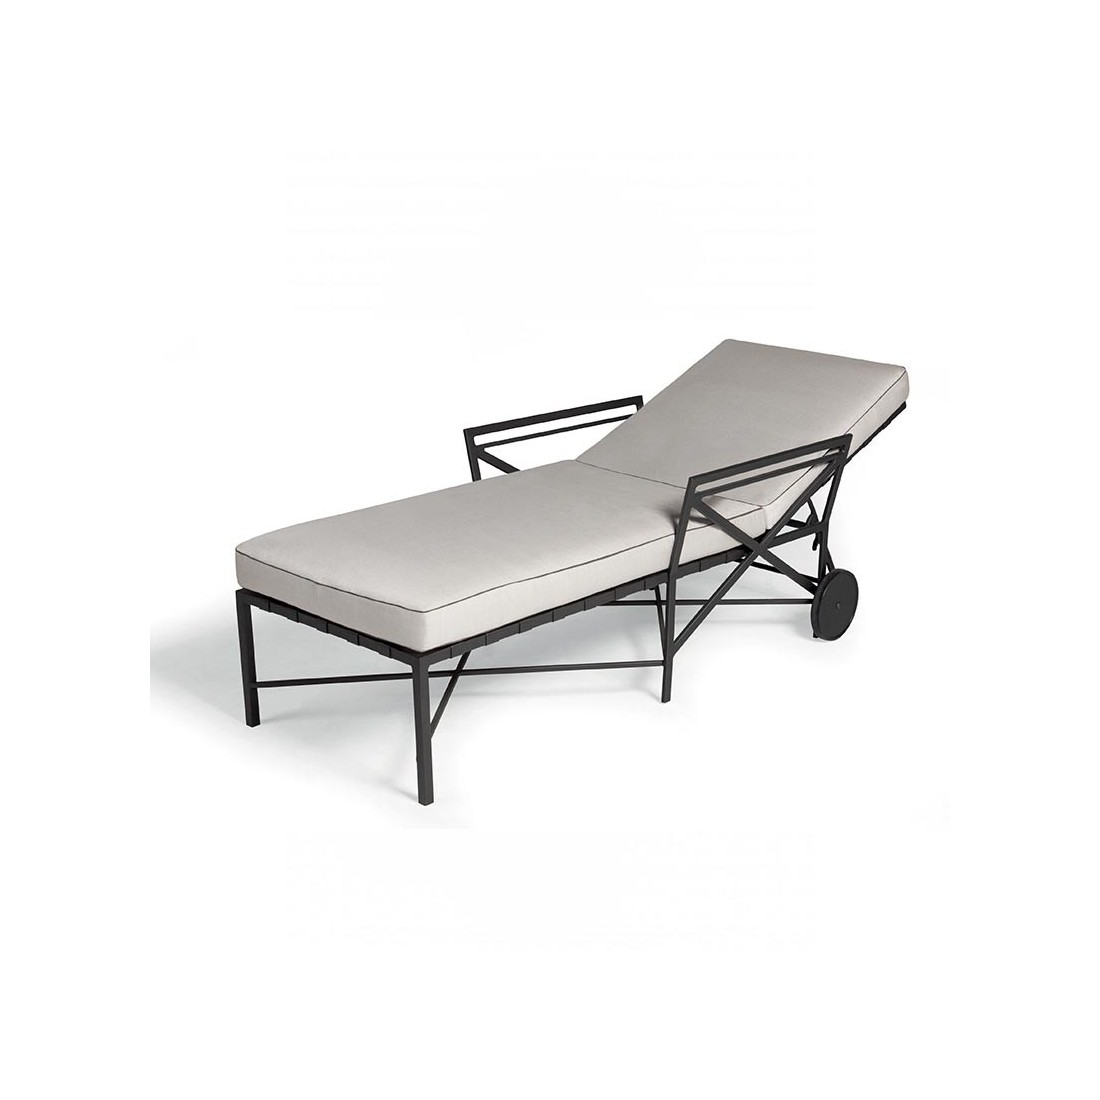 chaise longue de la collection 1950 de triconfort sp cialiste de mobilier pour jardin et terrasse. Black Bedroom Furniture Sets. Home Design Ideas